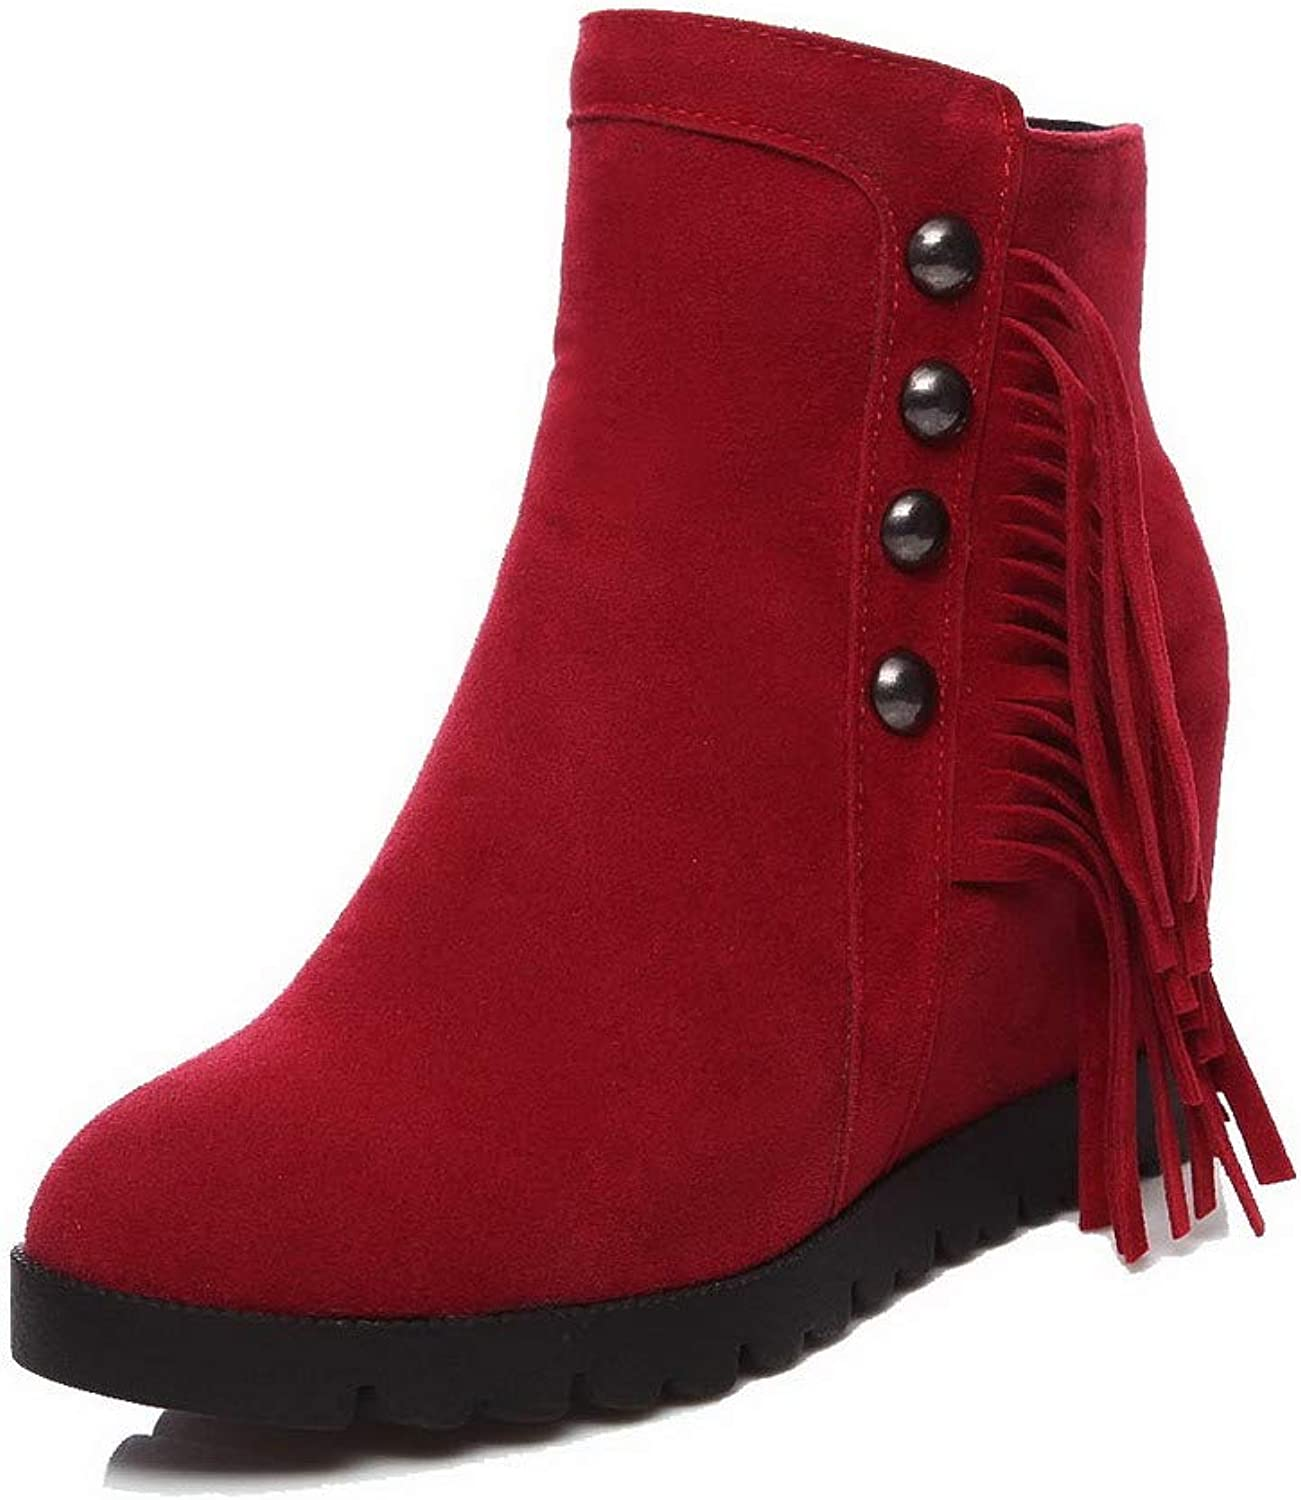 WeiPoot Women's Round-Toe High-Heels Frosted Low-Top Solid Boots, EGHXH015284